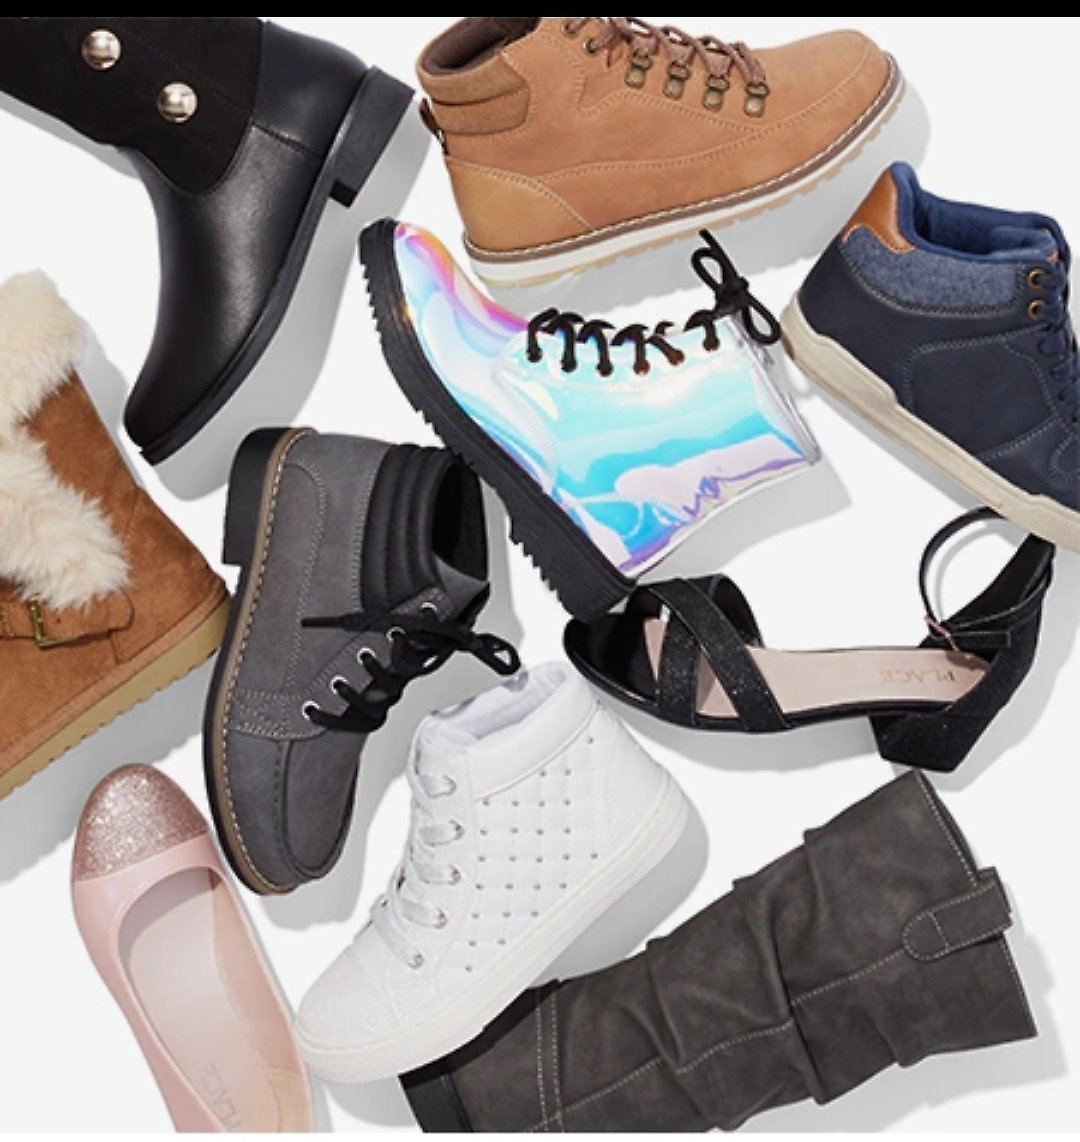 30-40% Off Shoes & Boots + F/S